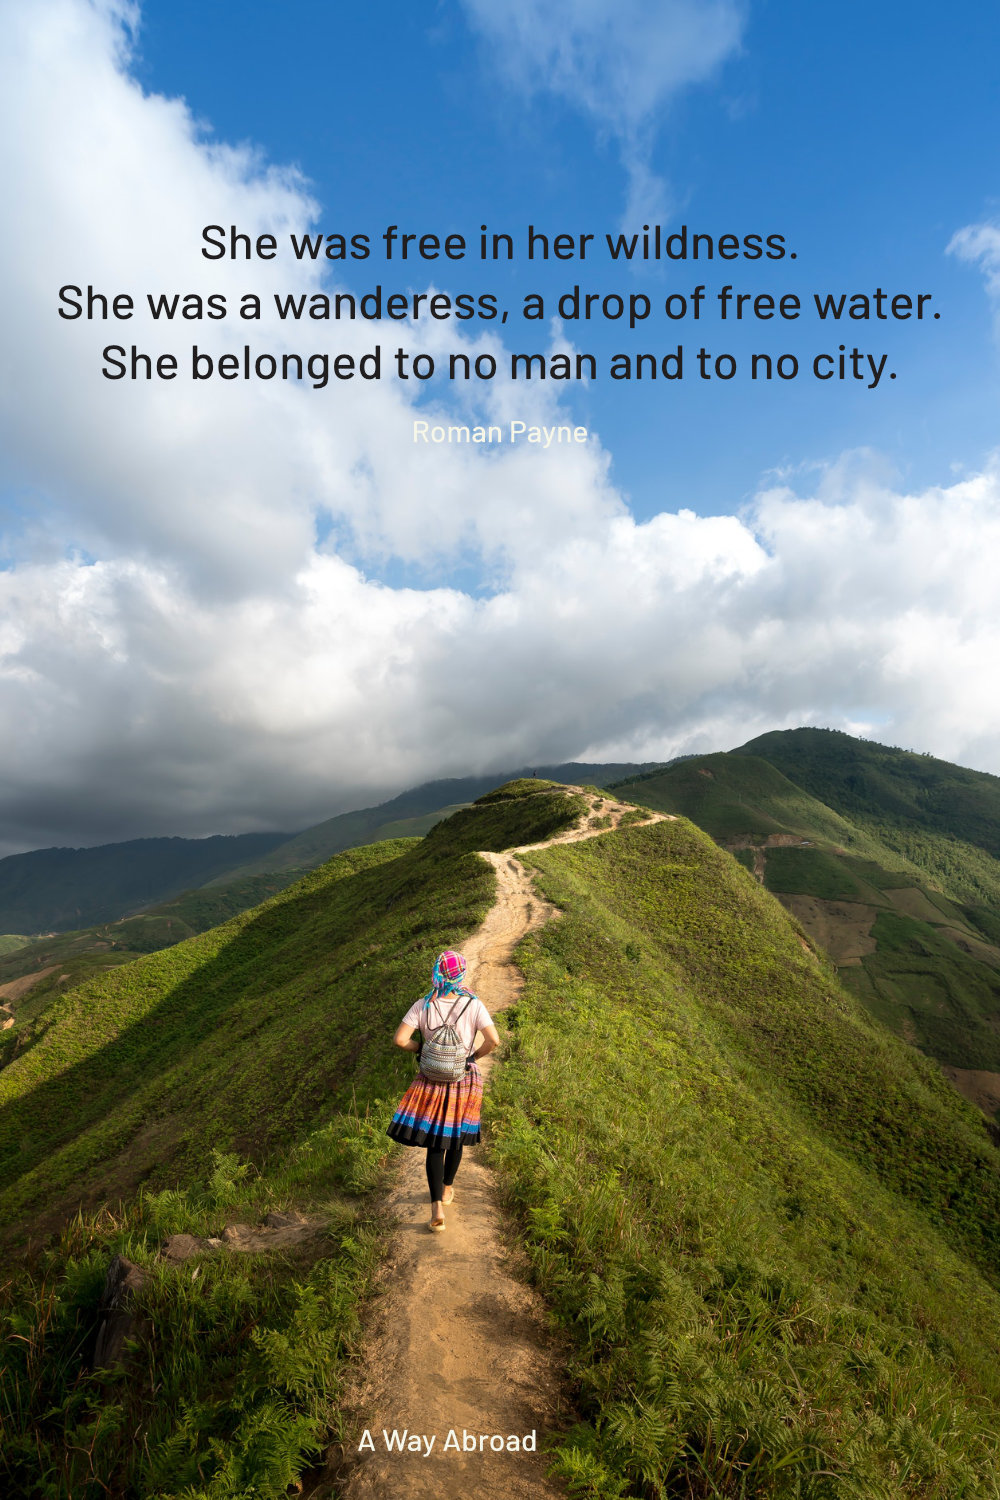 a woman in a bright skirt walking down a trail at the top of a hill